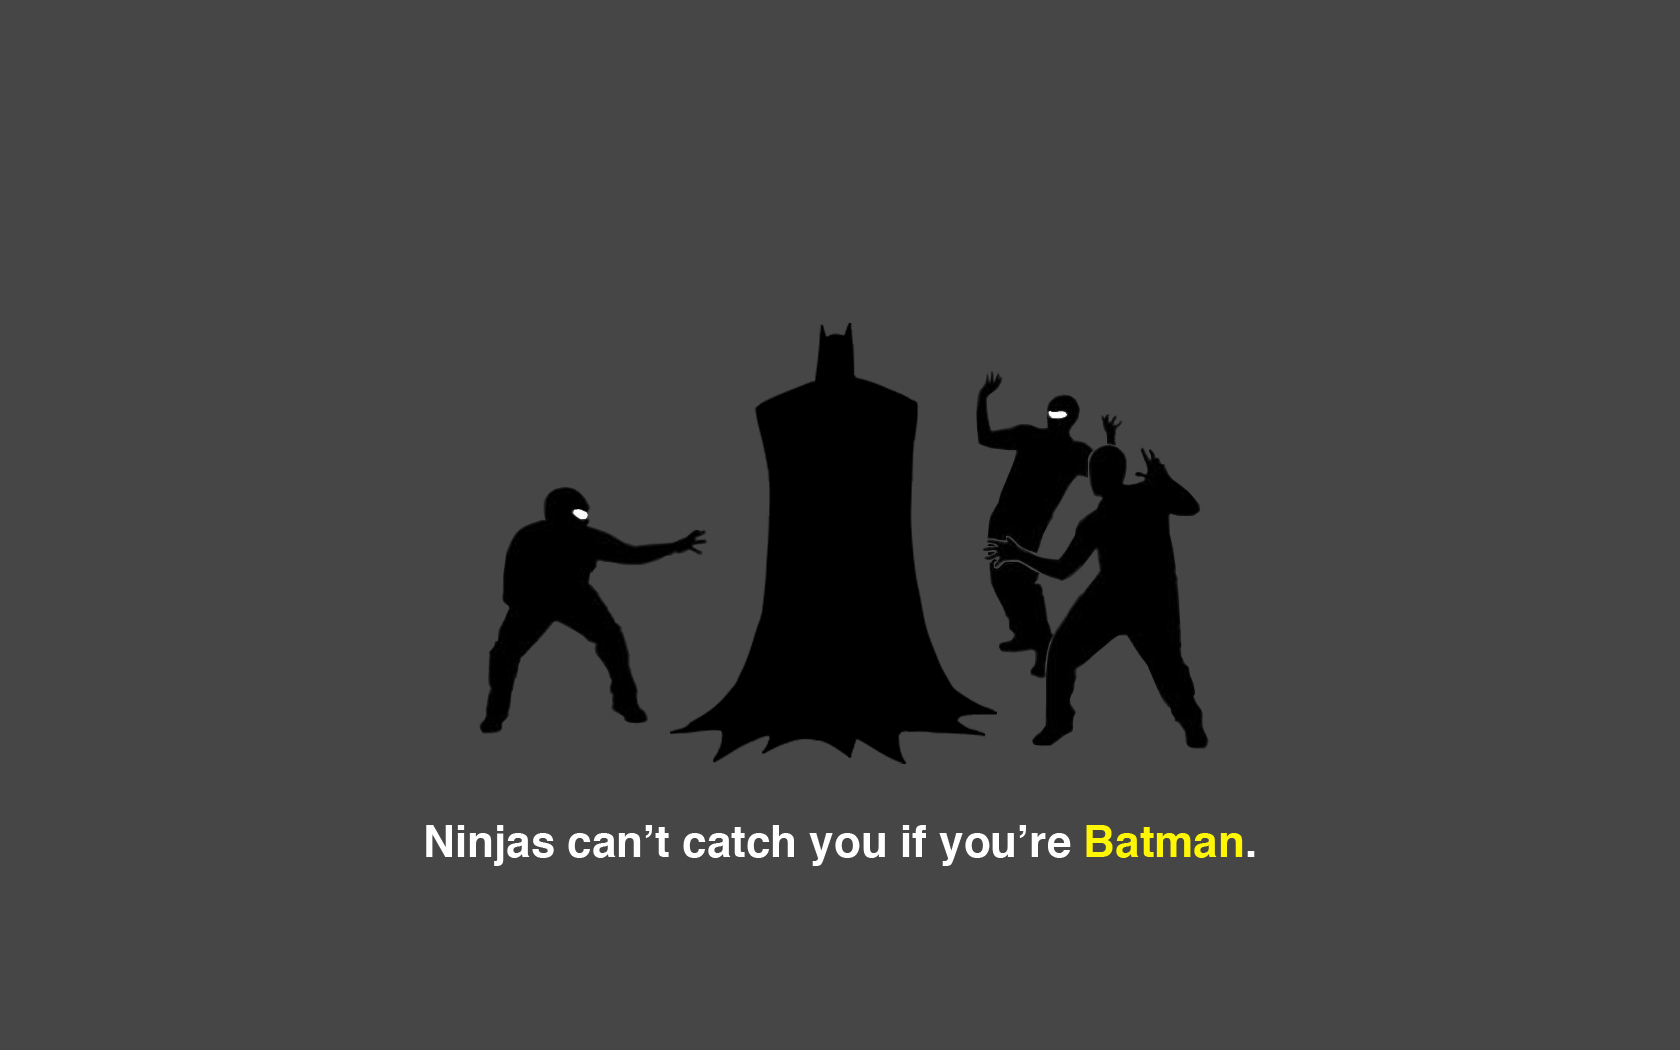 Batman ninjas cant catch HD Wallpaper